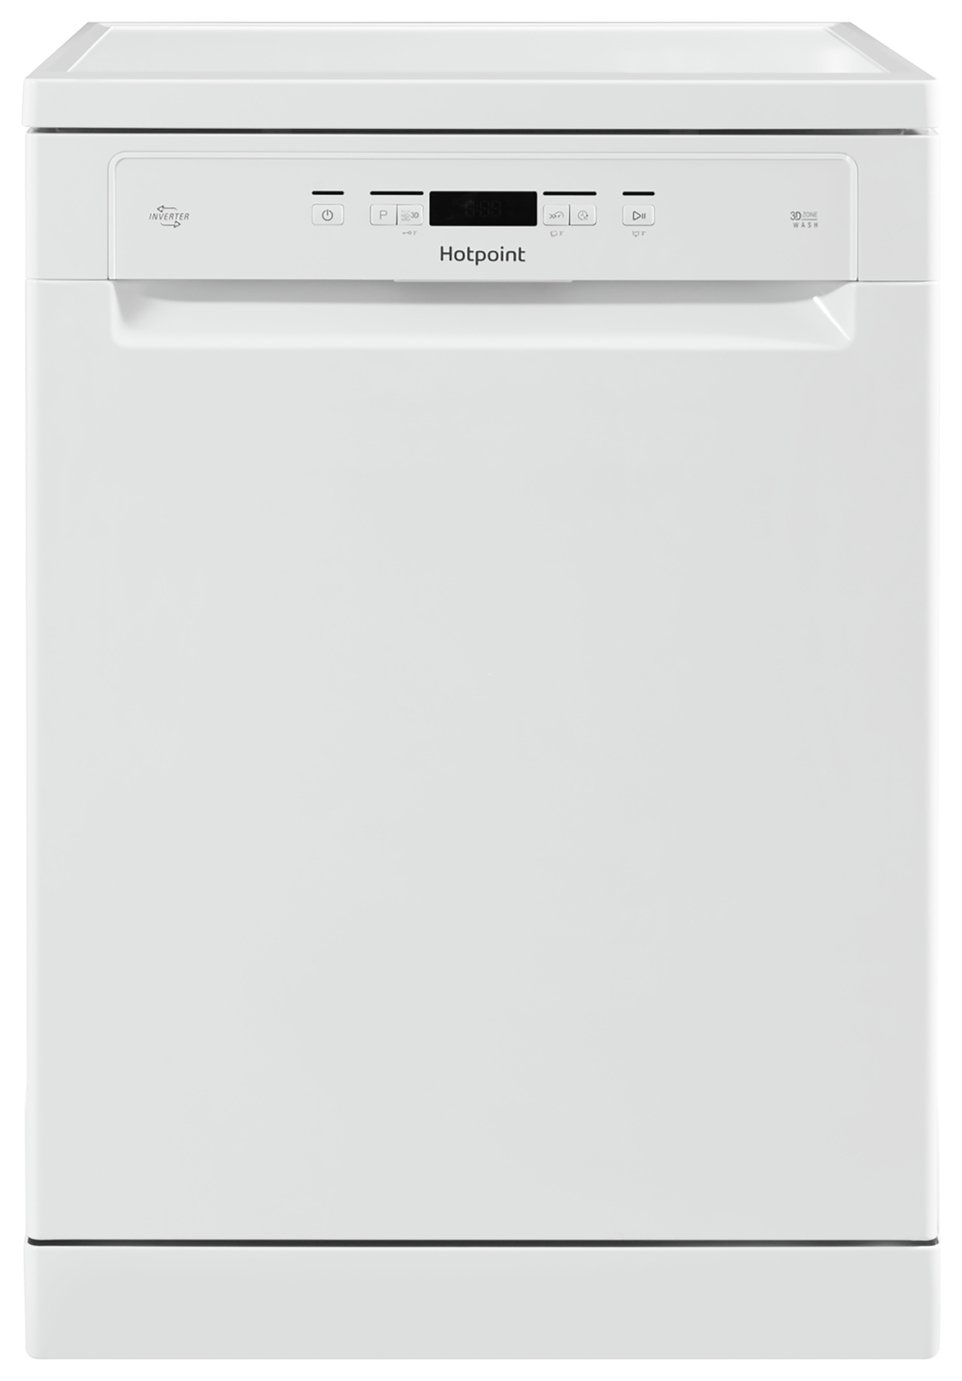 Hotpoint HFO3C23WF Full Size Dishwasher - White